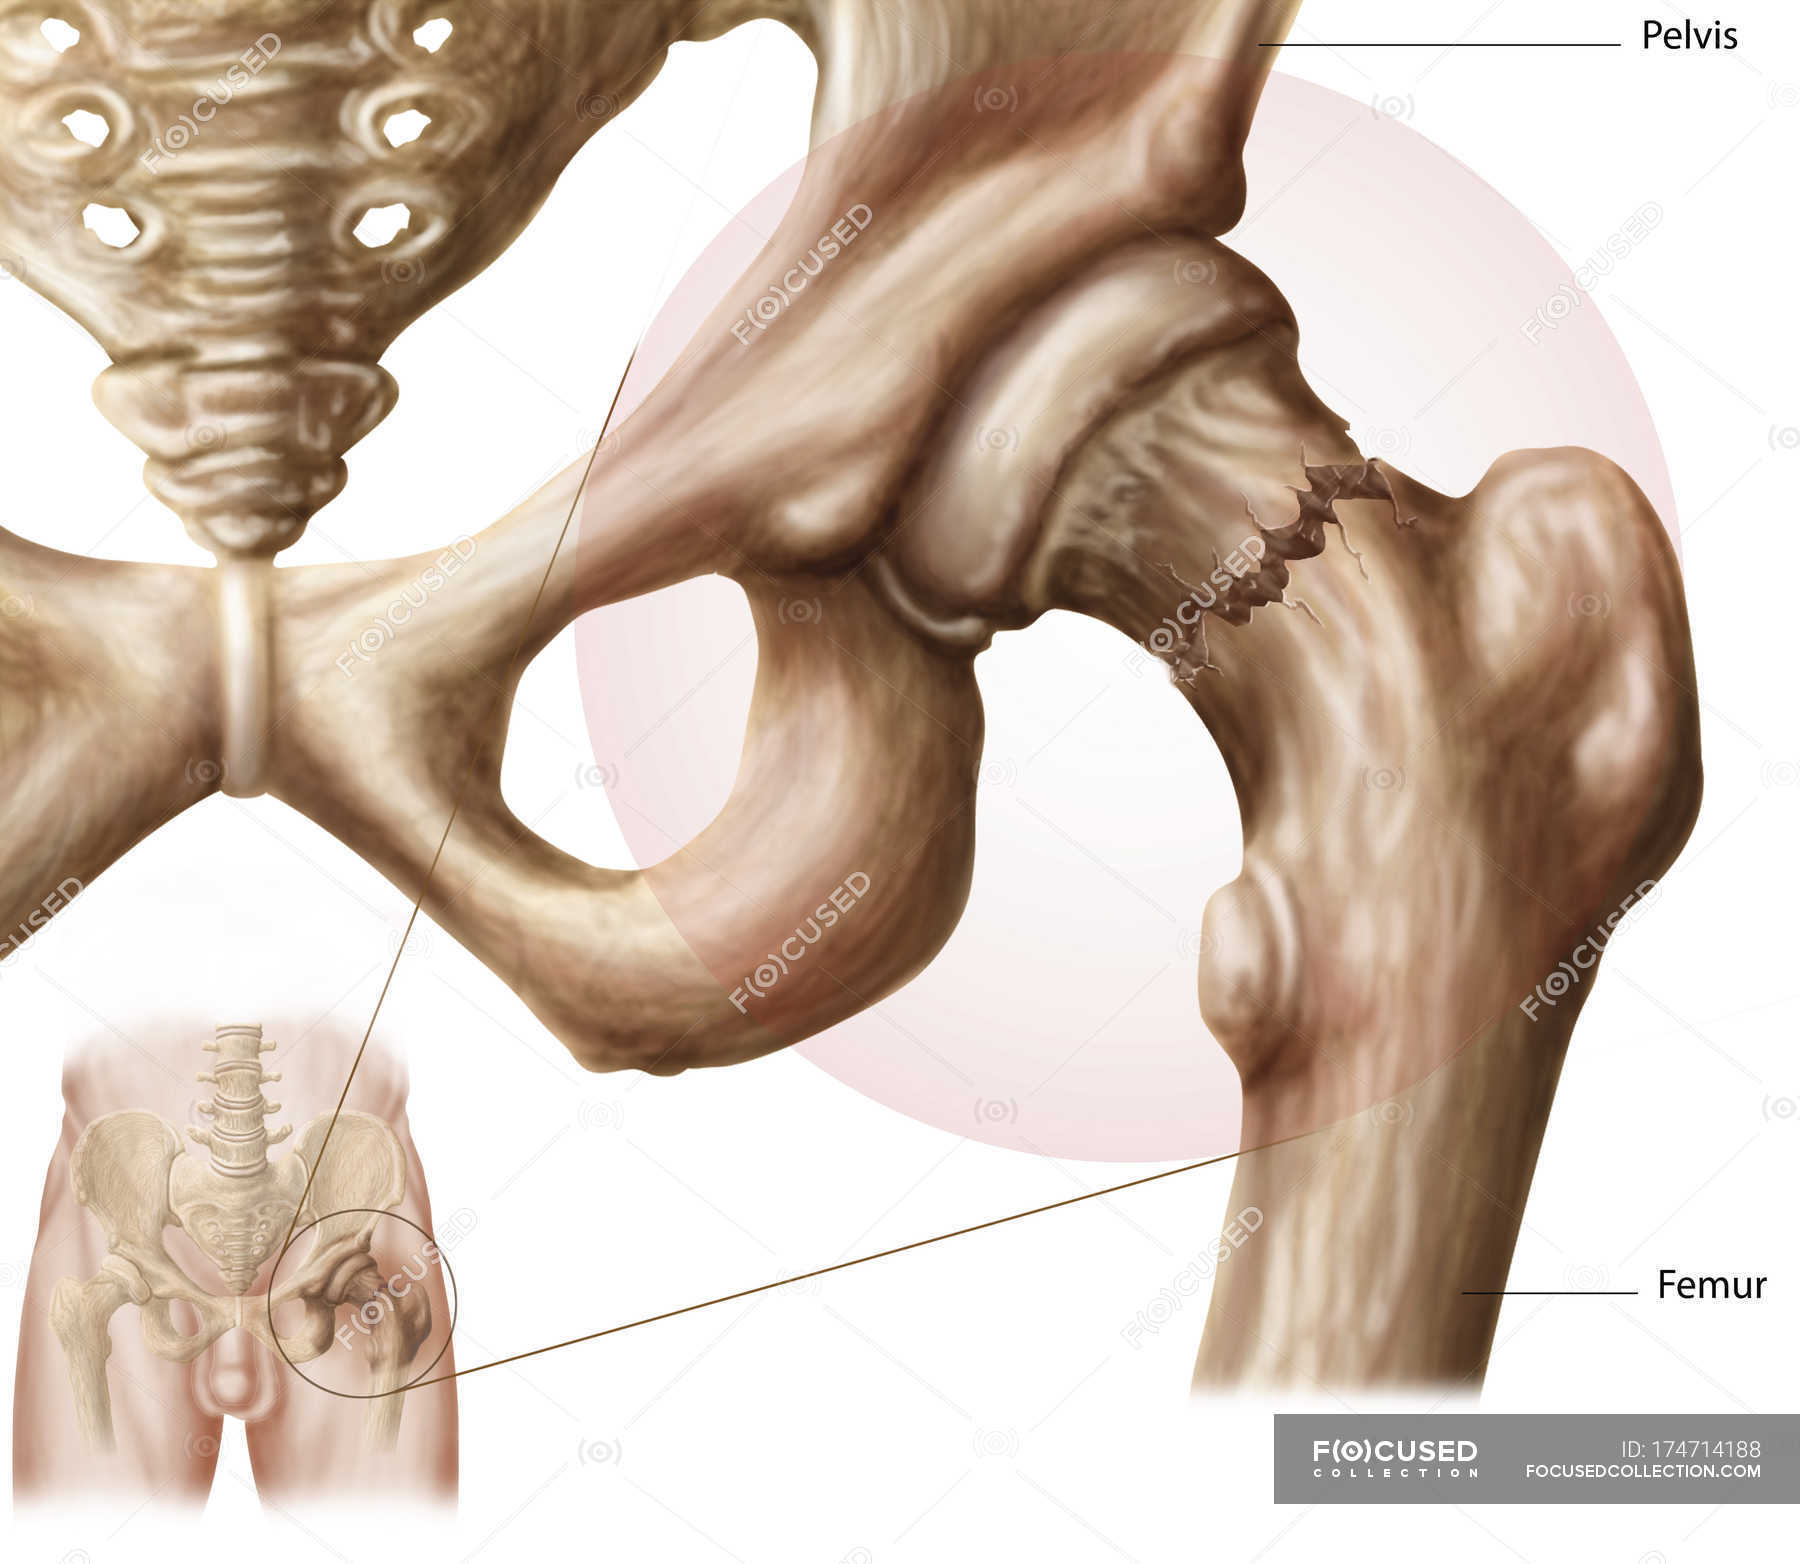 Anatomy of hip fracture medical illustration — Stock Photo | #174714188